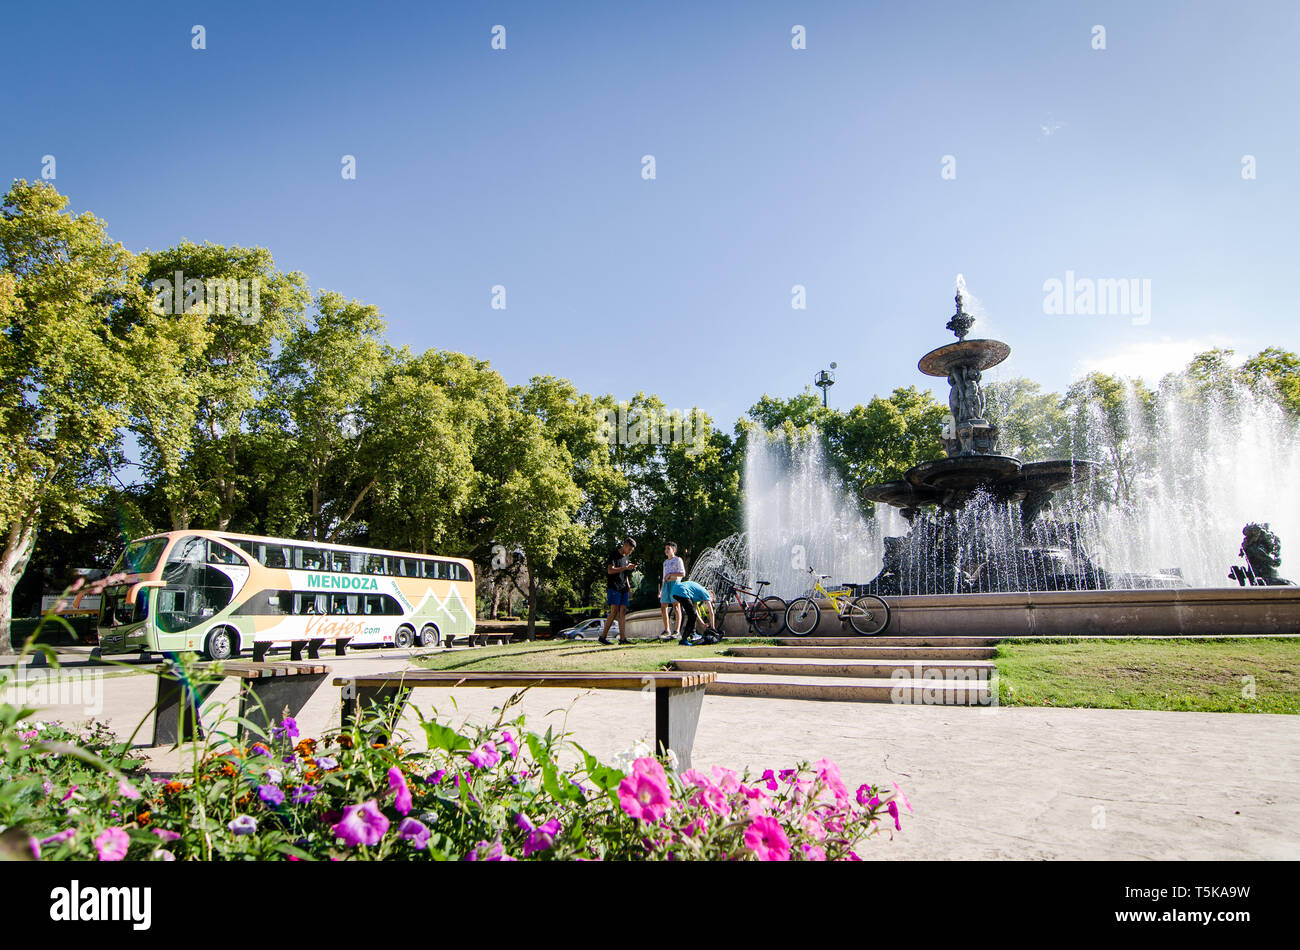 Mendoza, Argentina - April 13th 2019: Kids playing near historical fountain in San Martin National park - Stock Image